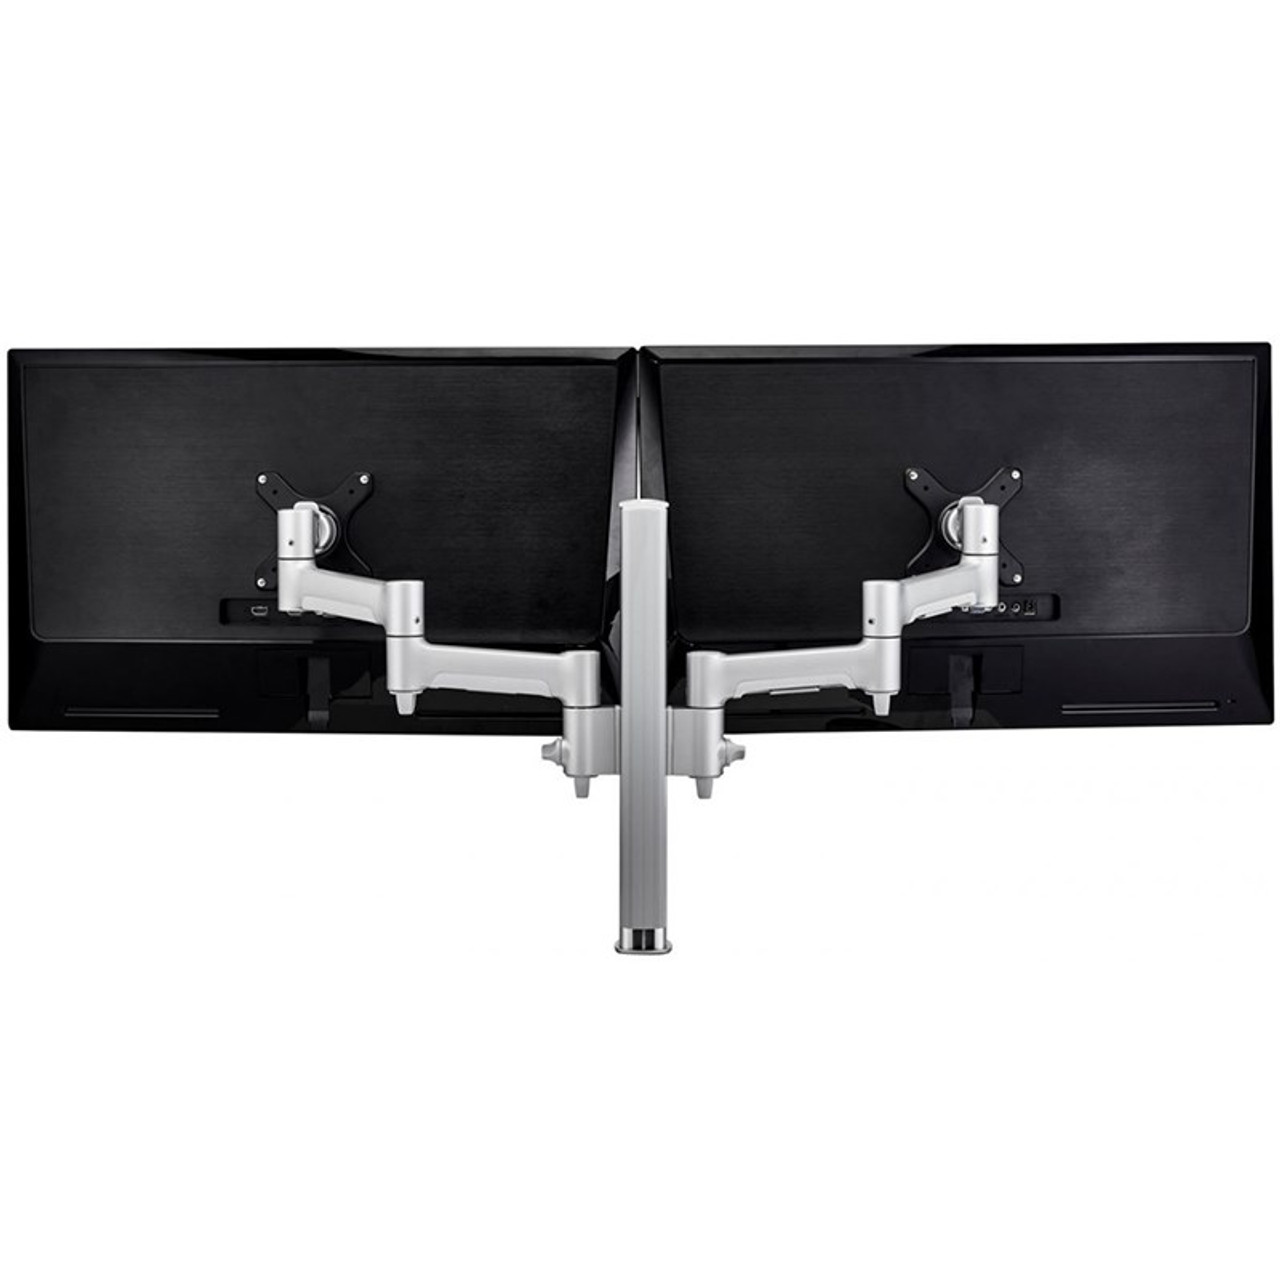 Image for Atdec AWMS-2-4640F-S 400mm Post Dual Articulating Monitor F Clamp - Silver CX Computer Superstore